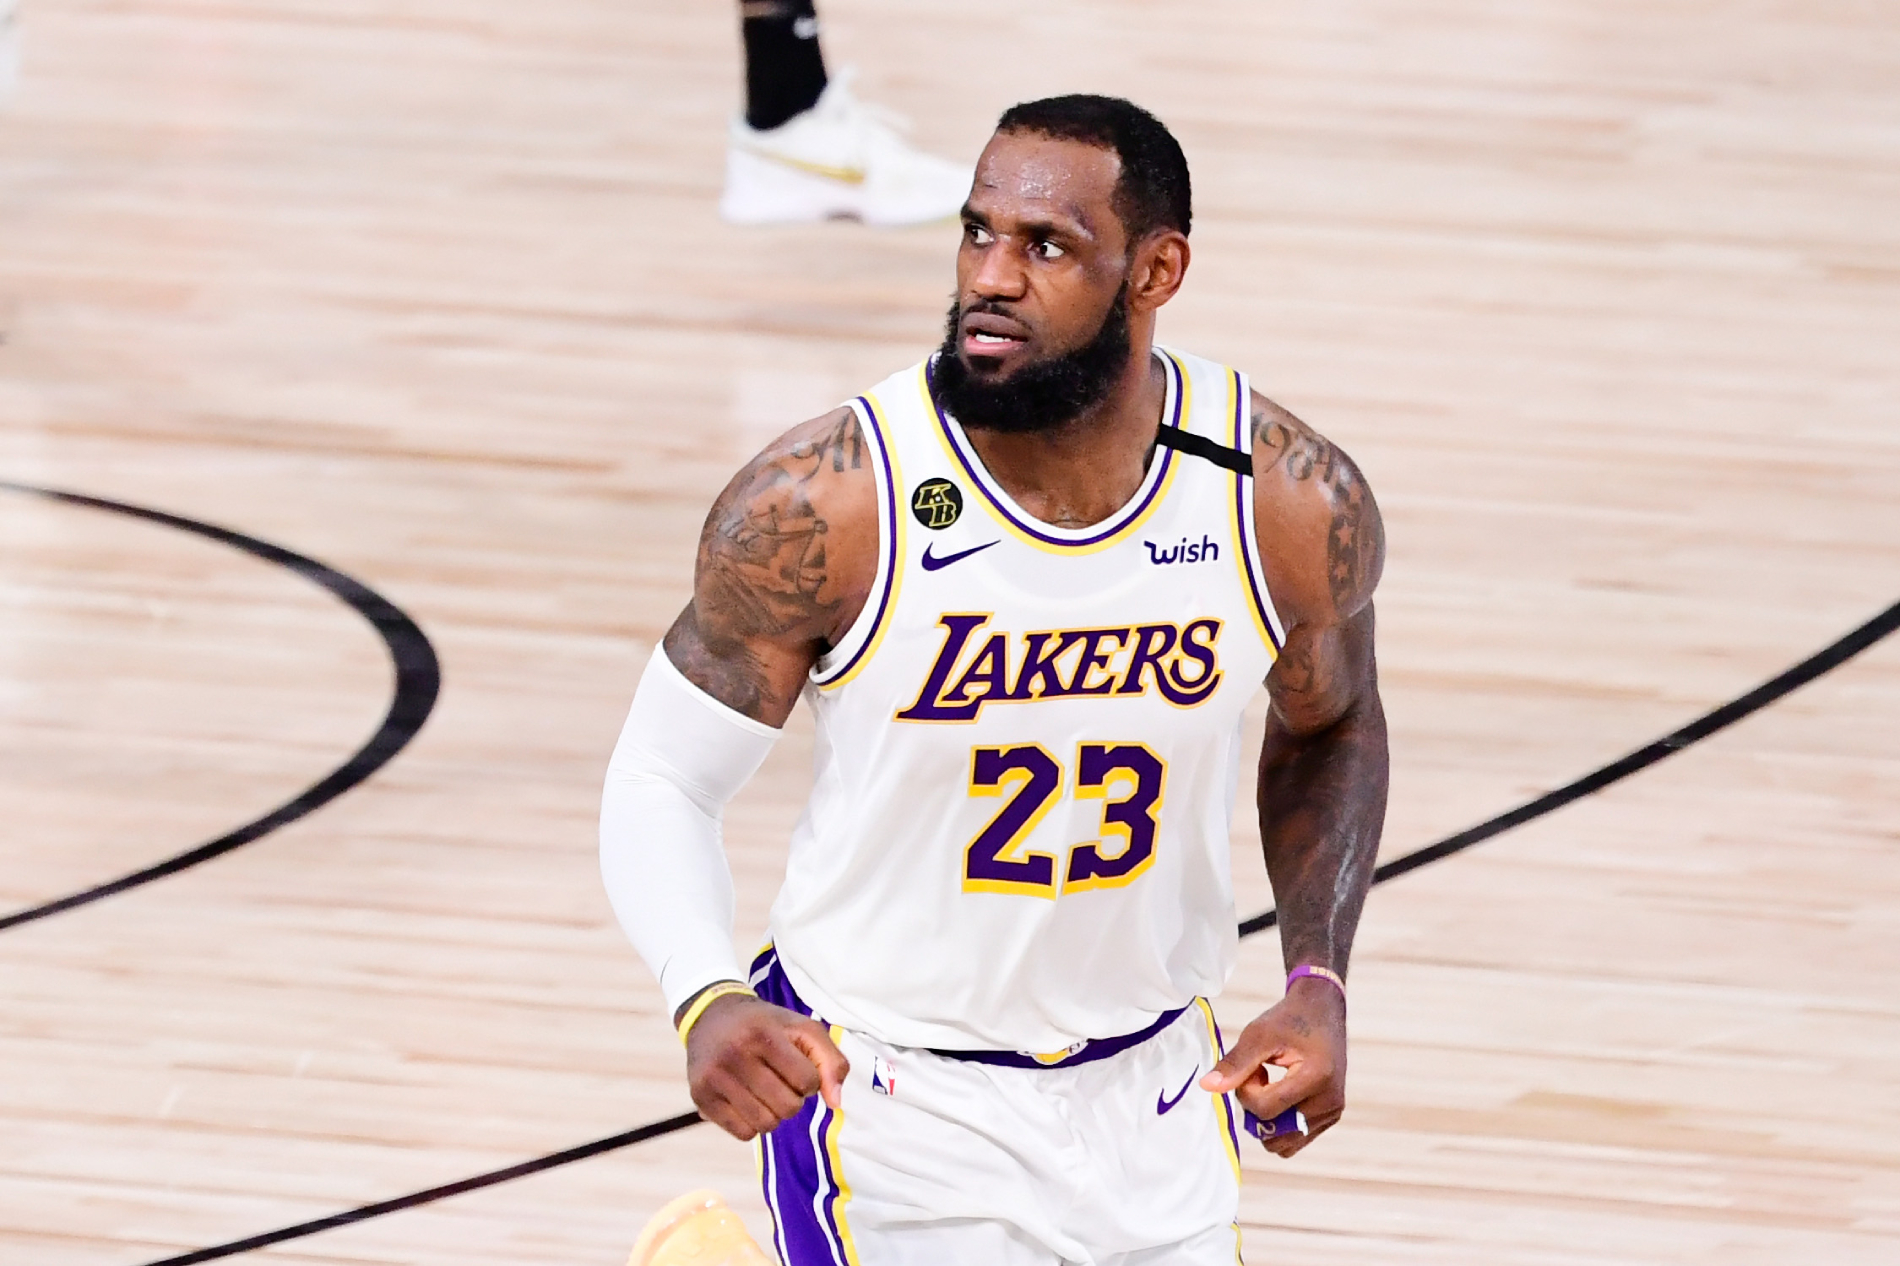 LeBron James has had plenty of rivalries in his career. Now, he could reignite his old one with the Golden State Warriors, but on the Lakers.